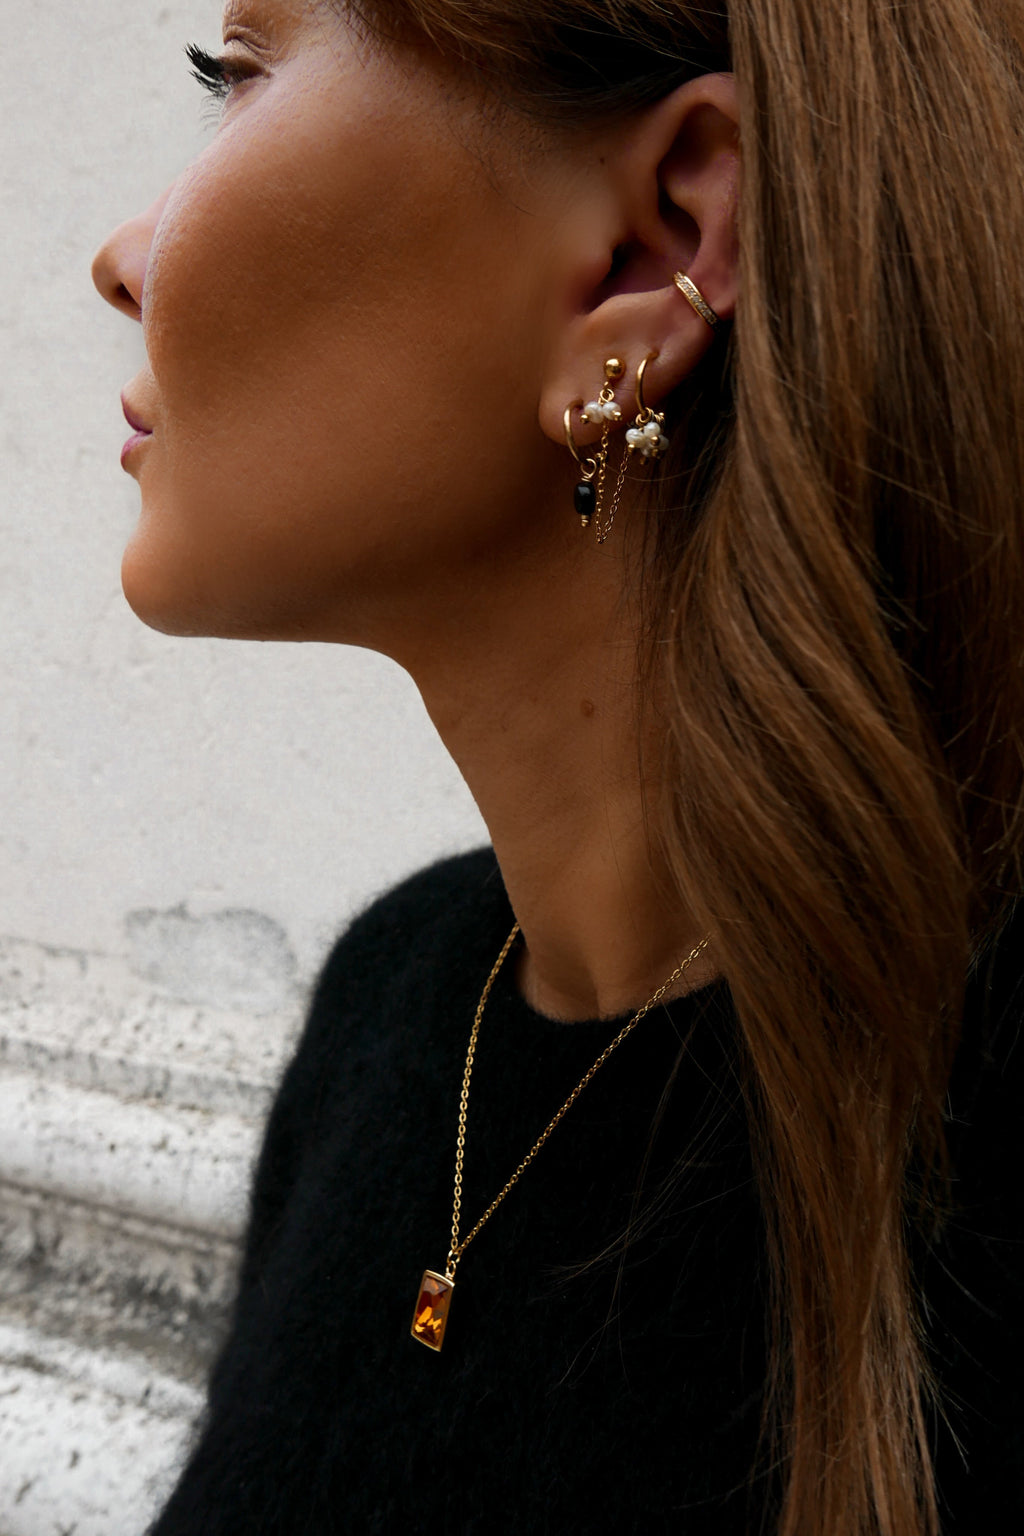 Beth Hoop Earrings - Boutique Minimaliste